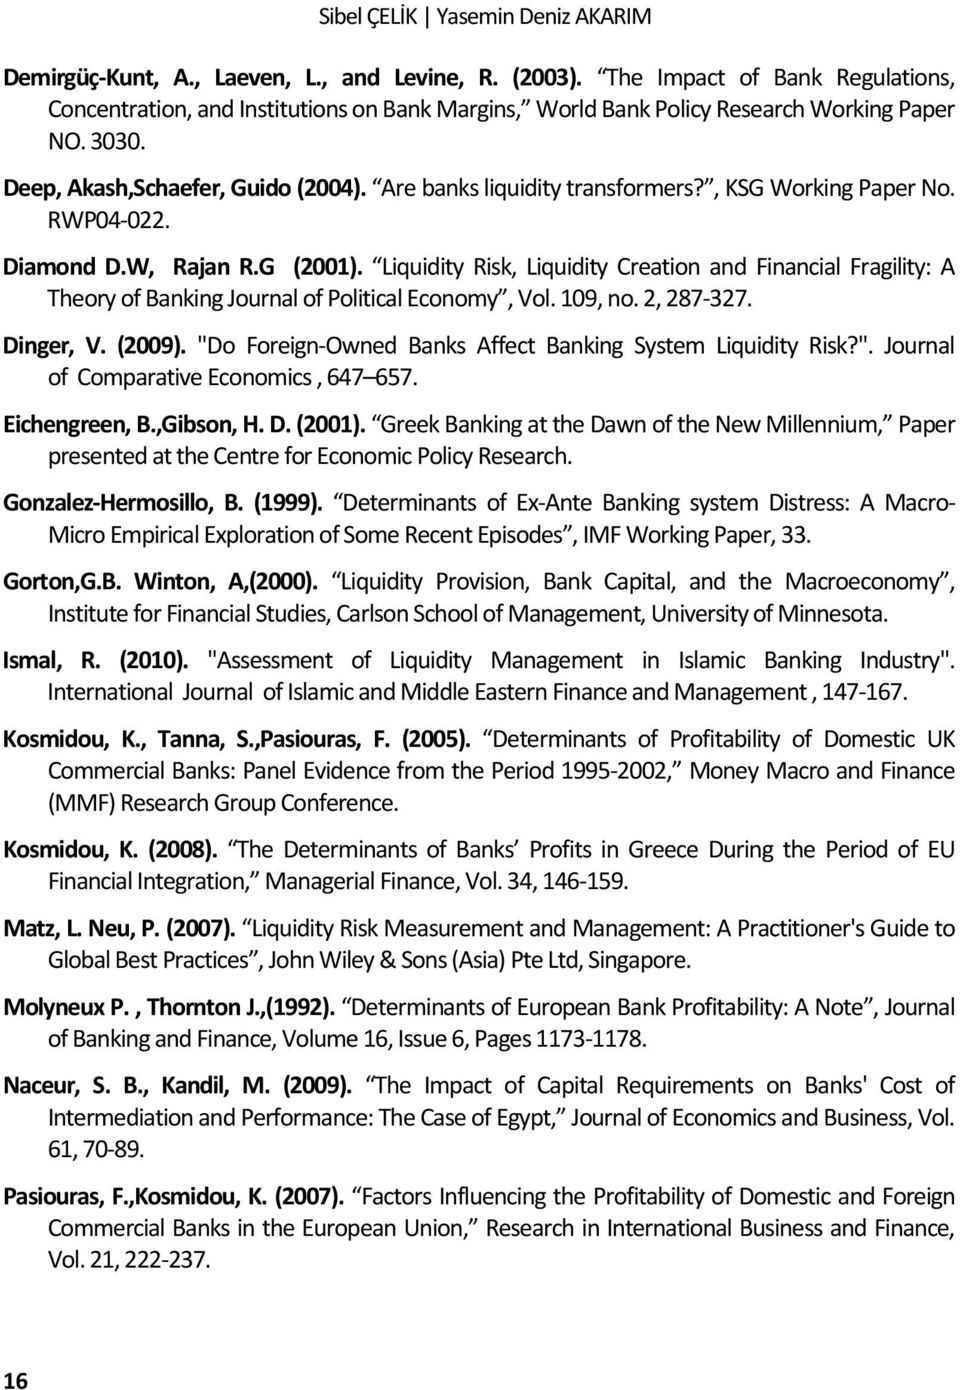 , KSG Working Paper No. RWP04-0. Diamond D.W, Rajan R.G (00). Liquidy Risk, Liquidy Creation and Financial Fragily: A Theory of Banking Journal of Polical Economy, Vol. 09, no., 87-37. Dinger, V.